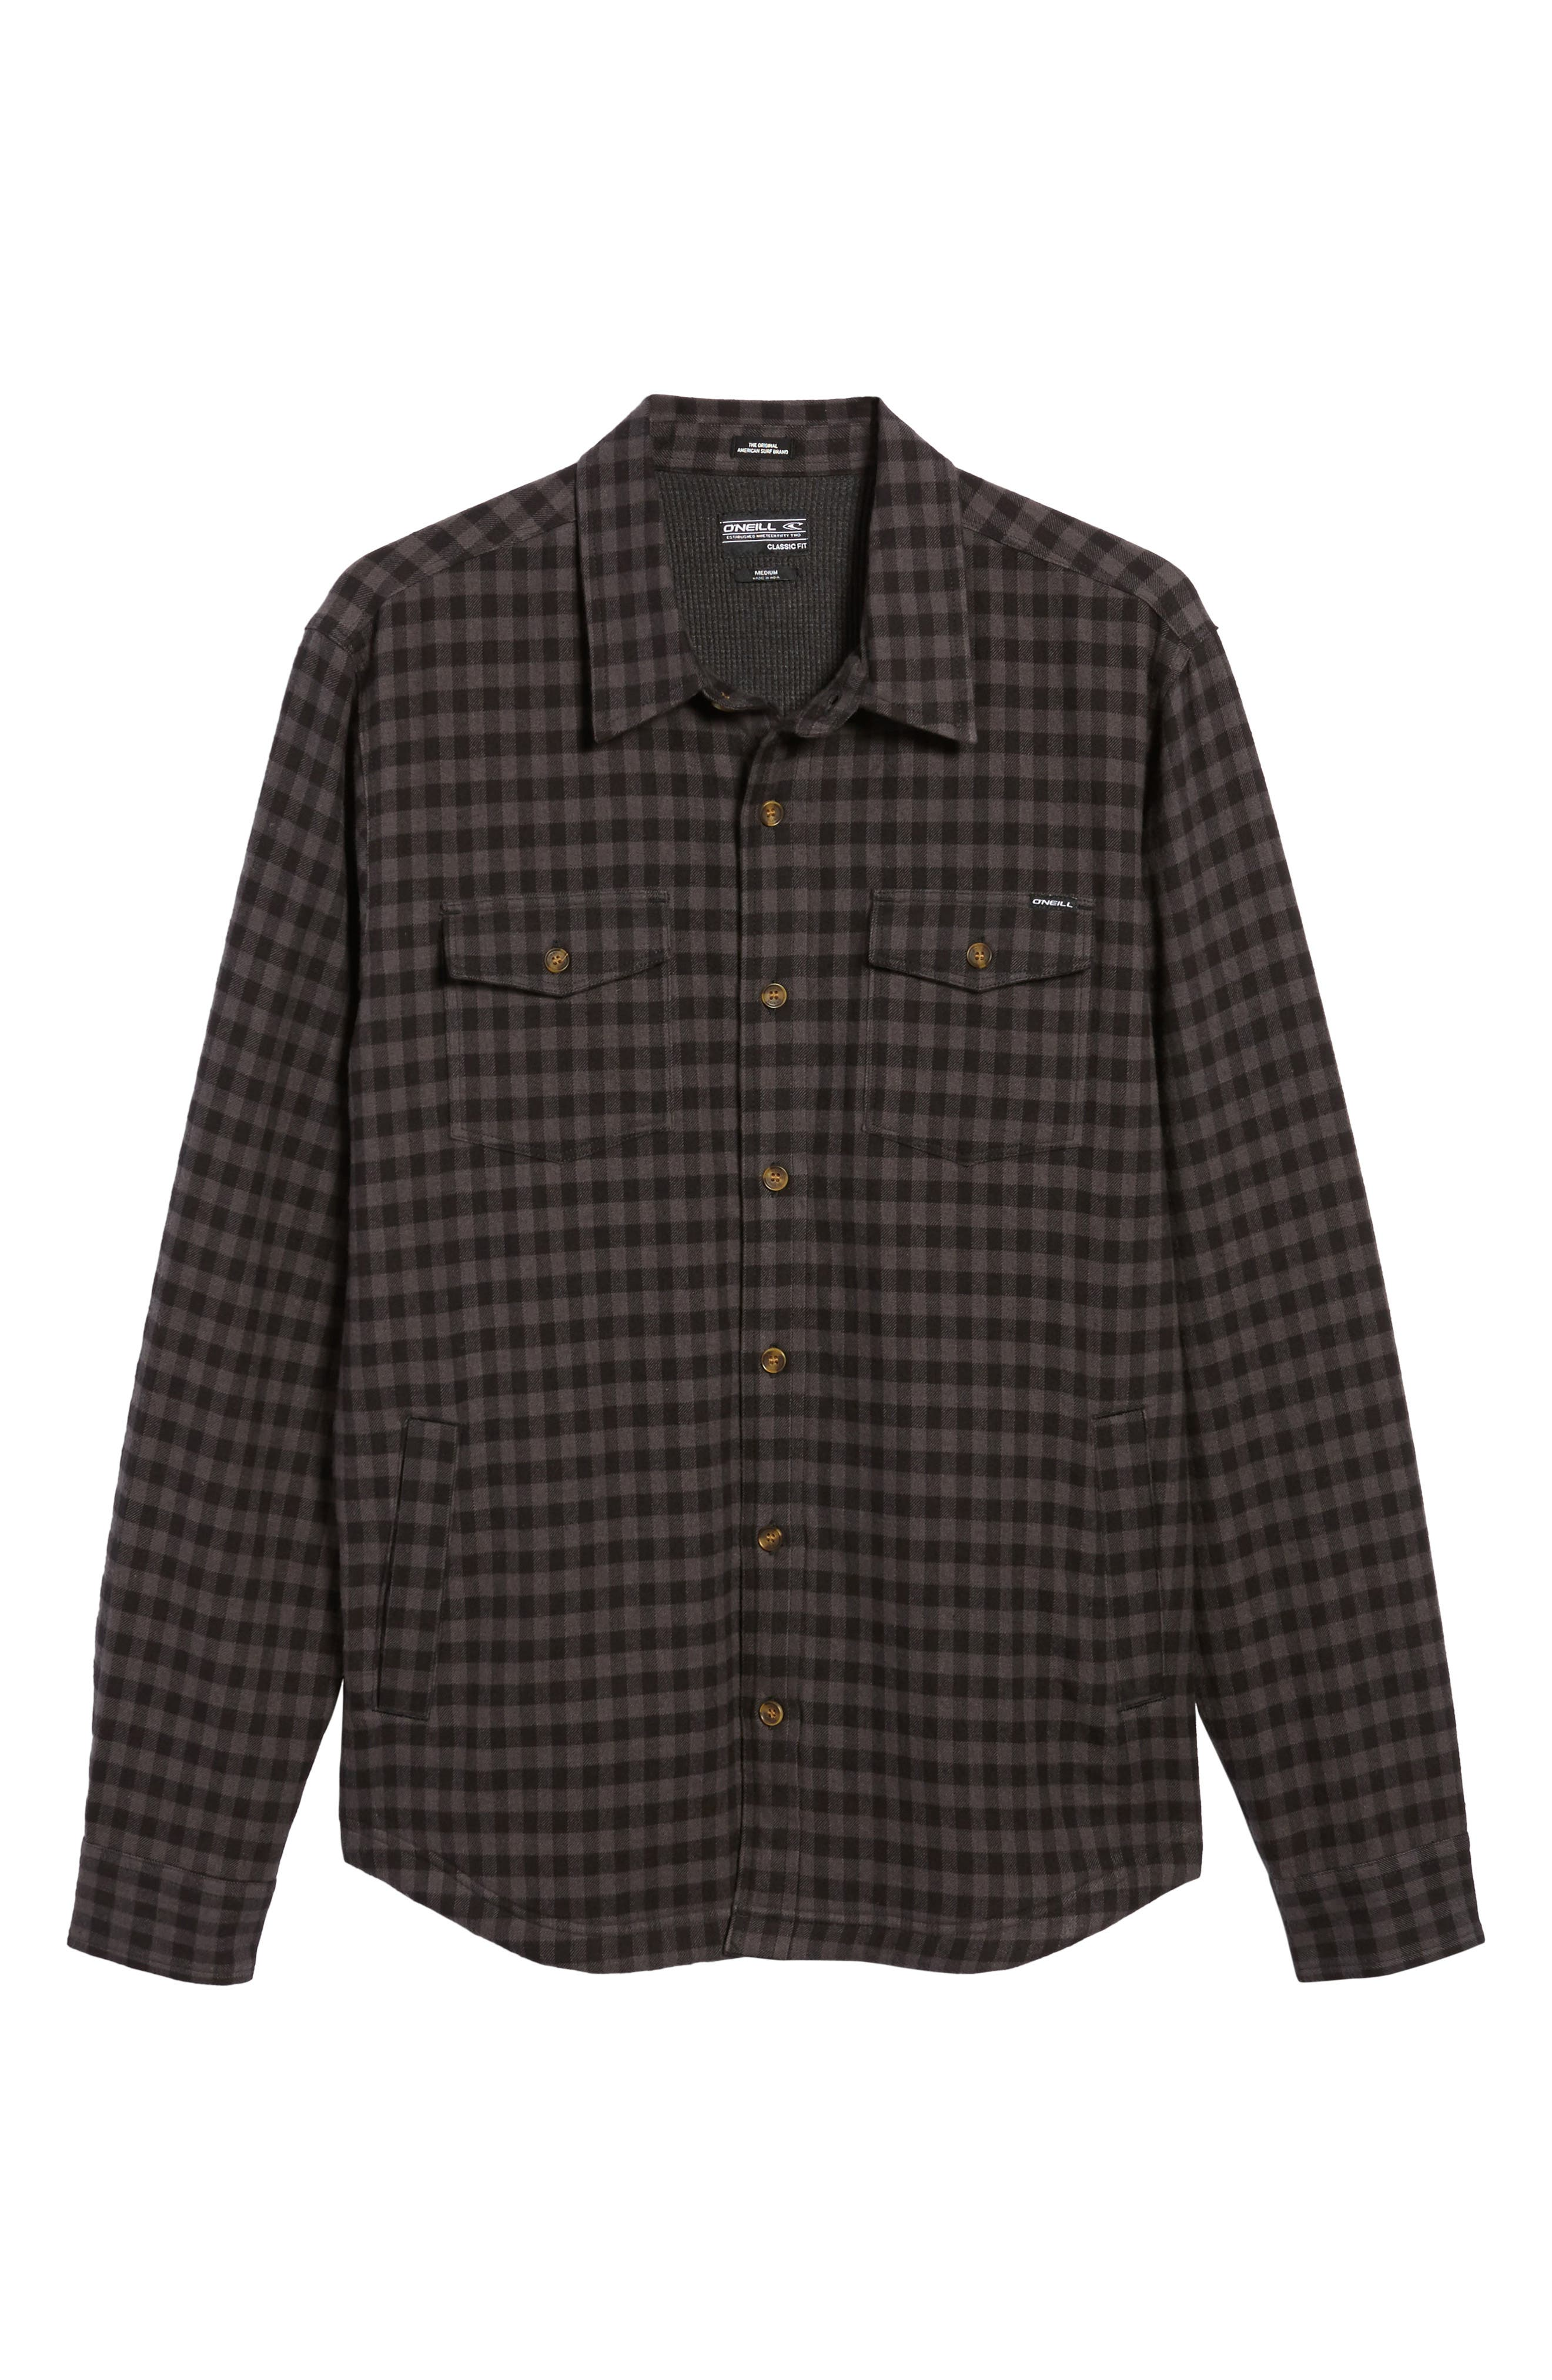 Gronk Lined Flannel Shirt,                             Alternate thumbnail 6, color,                             001